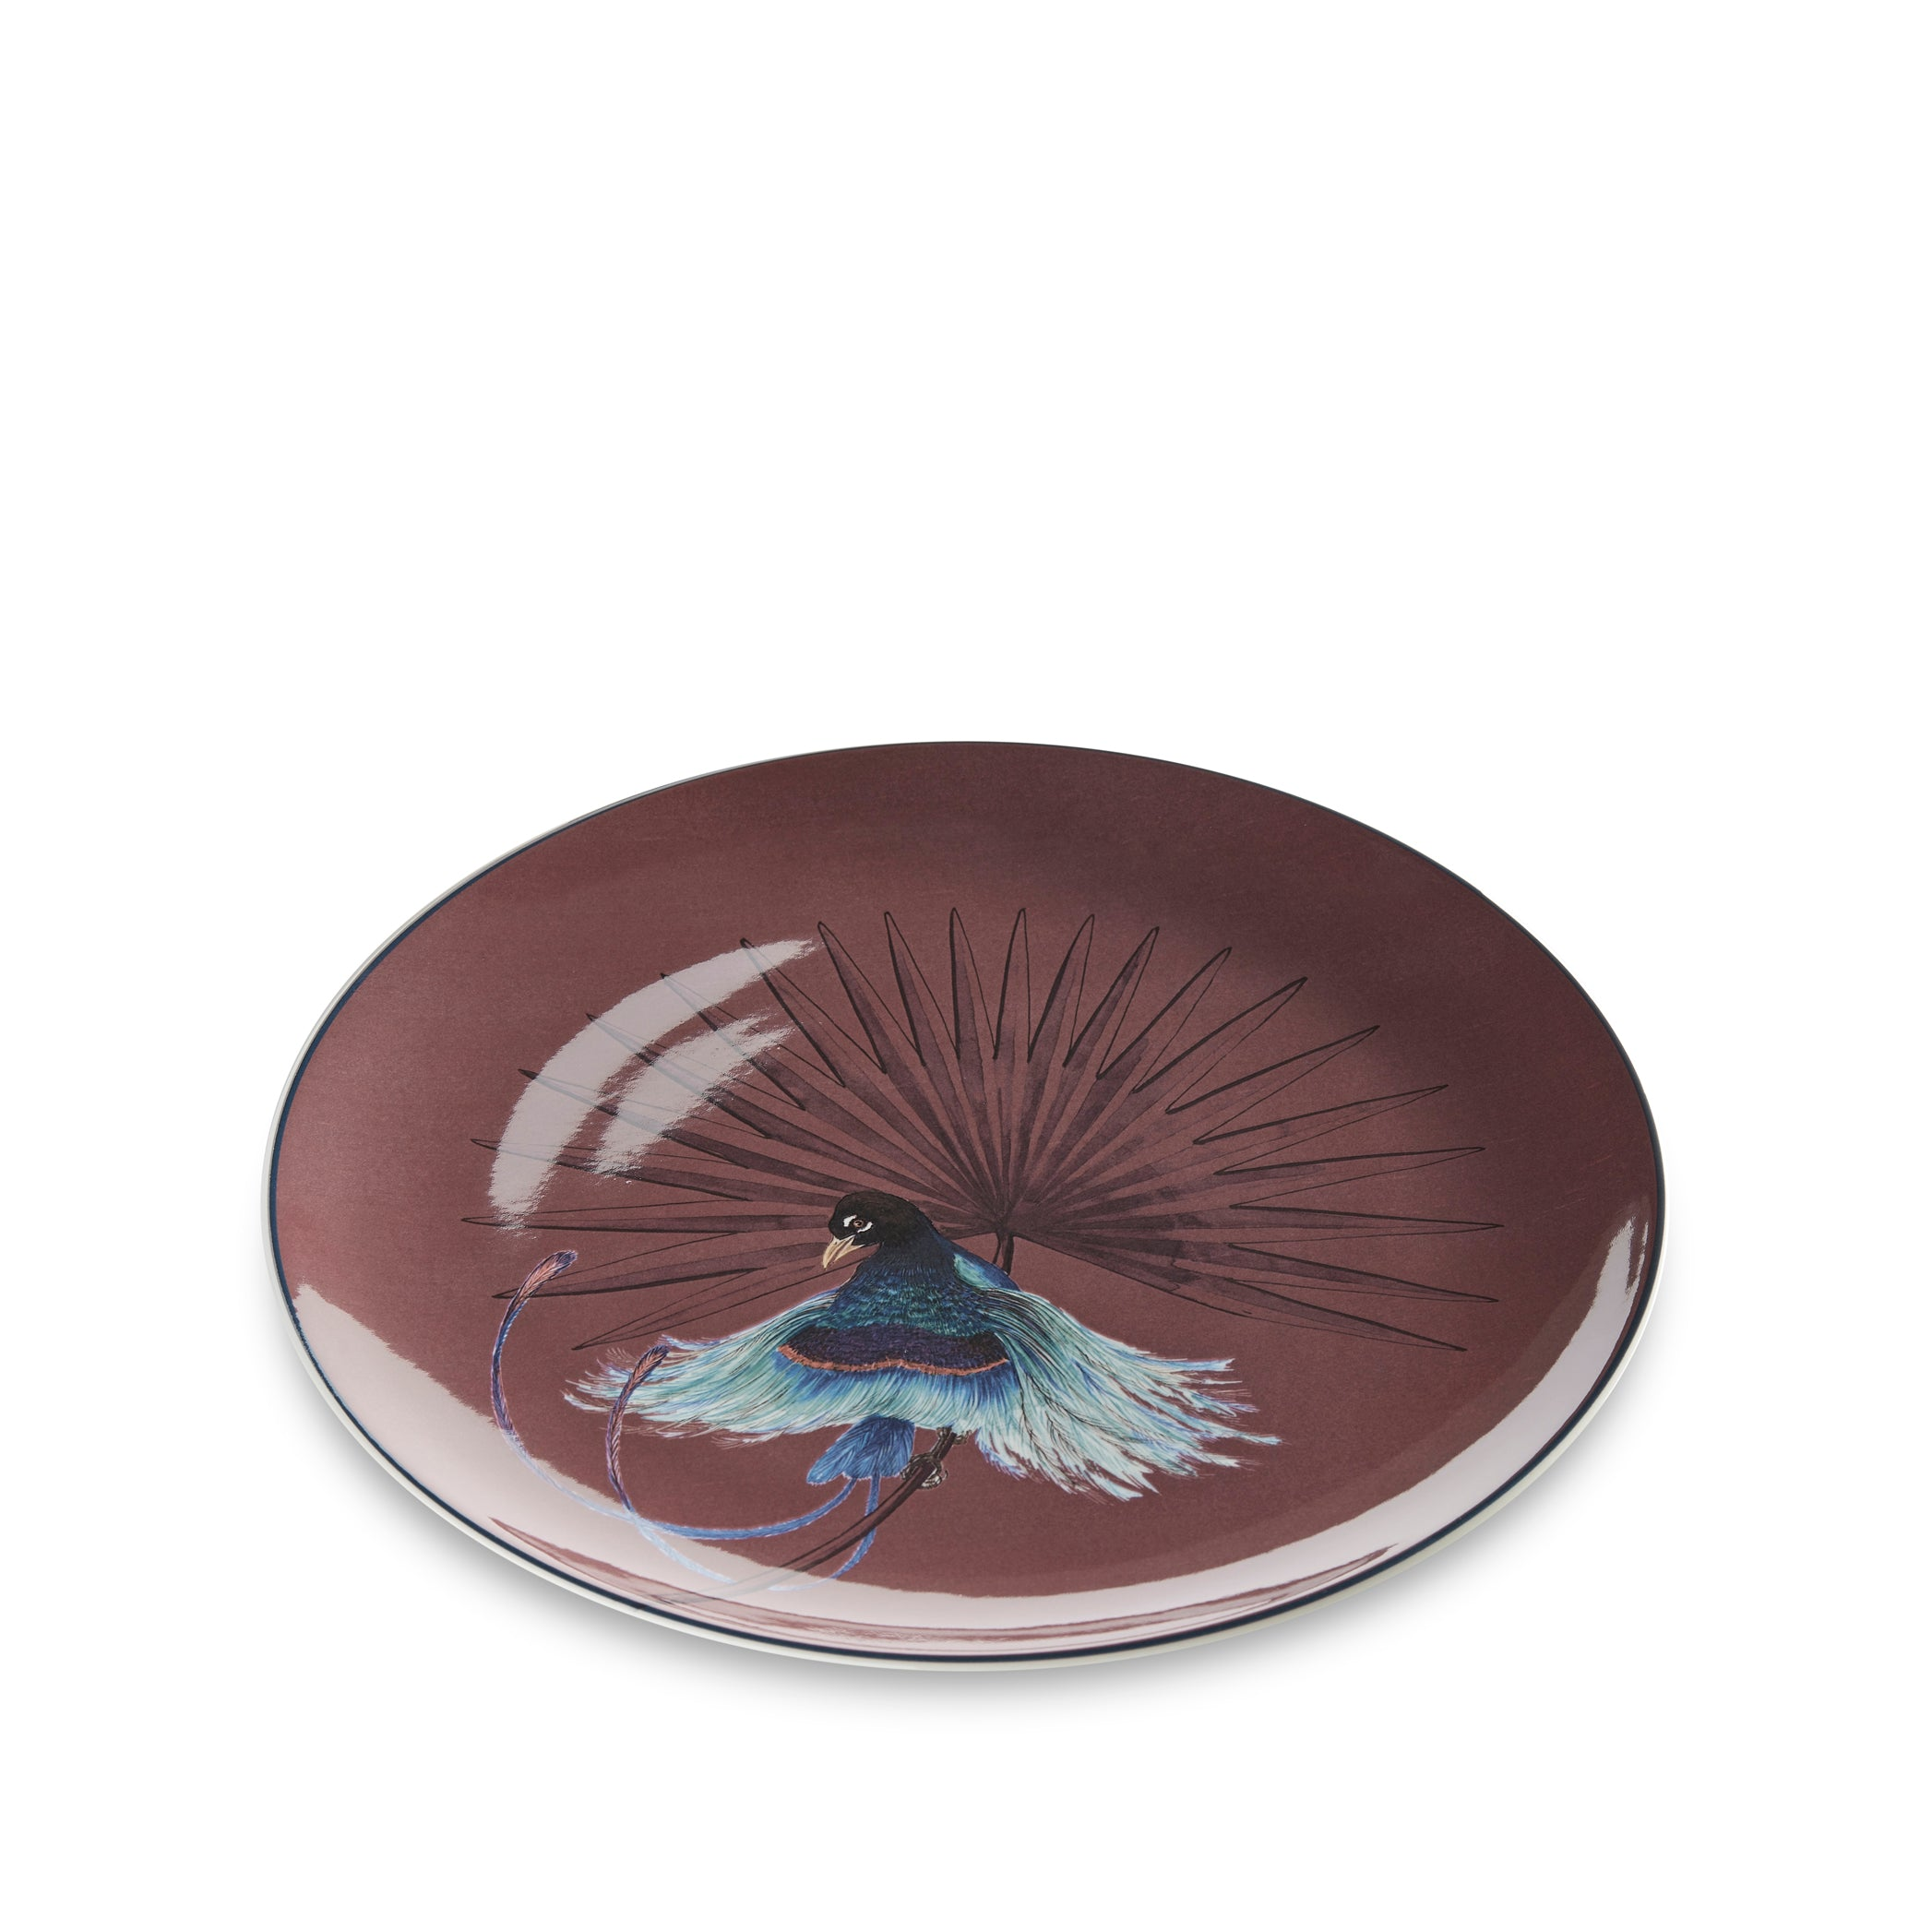 Bird Of Paradise 25cm Dinner Plate in Mahogany